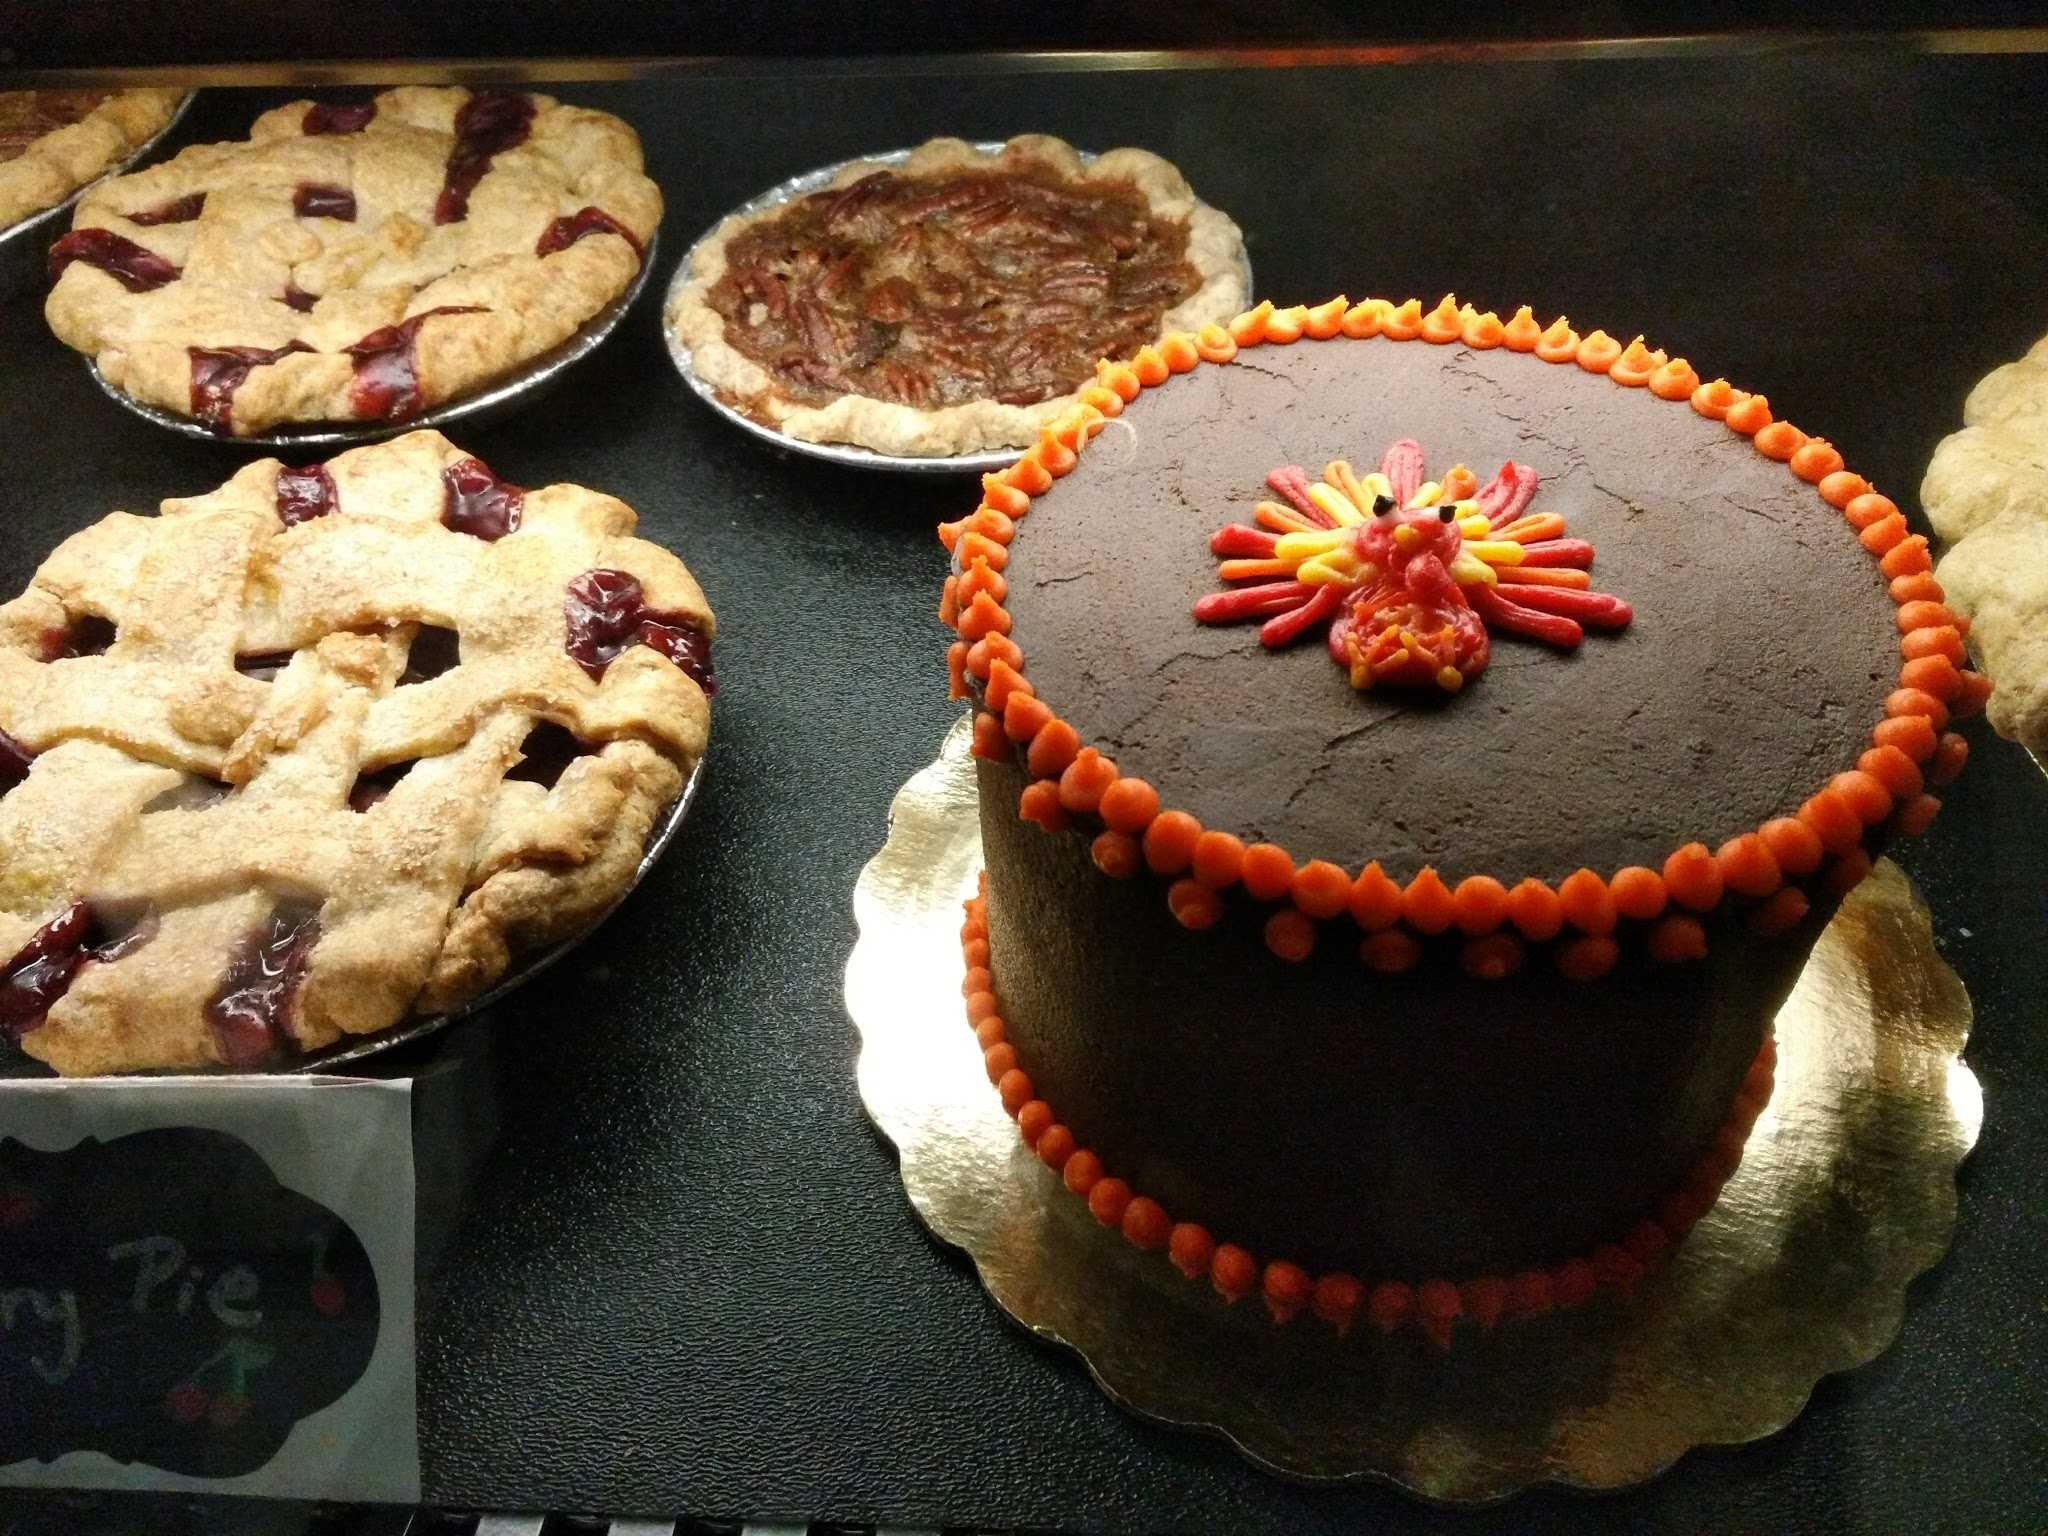 Pick up a festive pie or cake during Sweet Mary's Bakery's extended Thanksgiving hours.